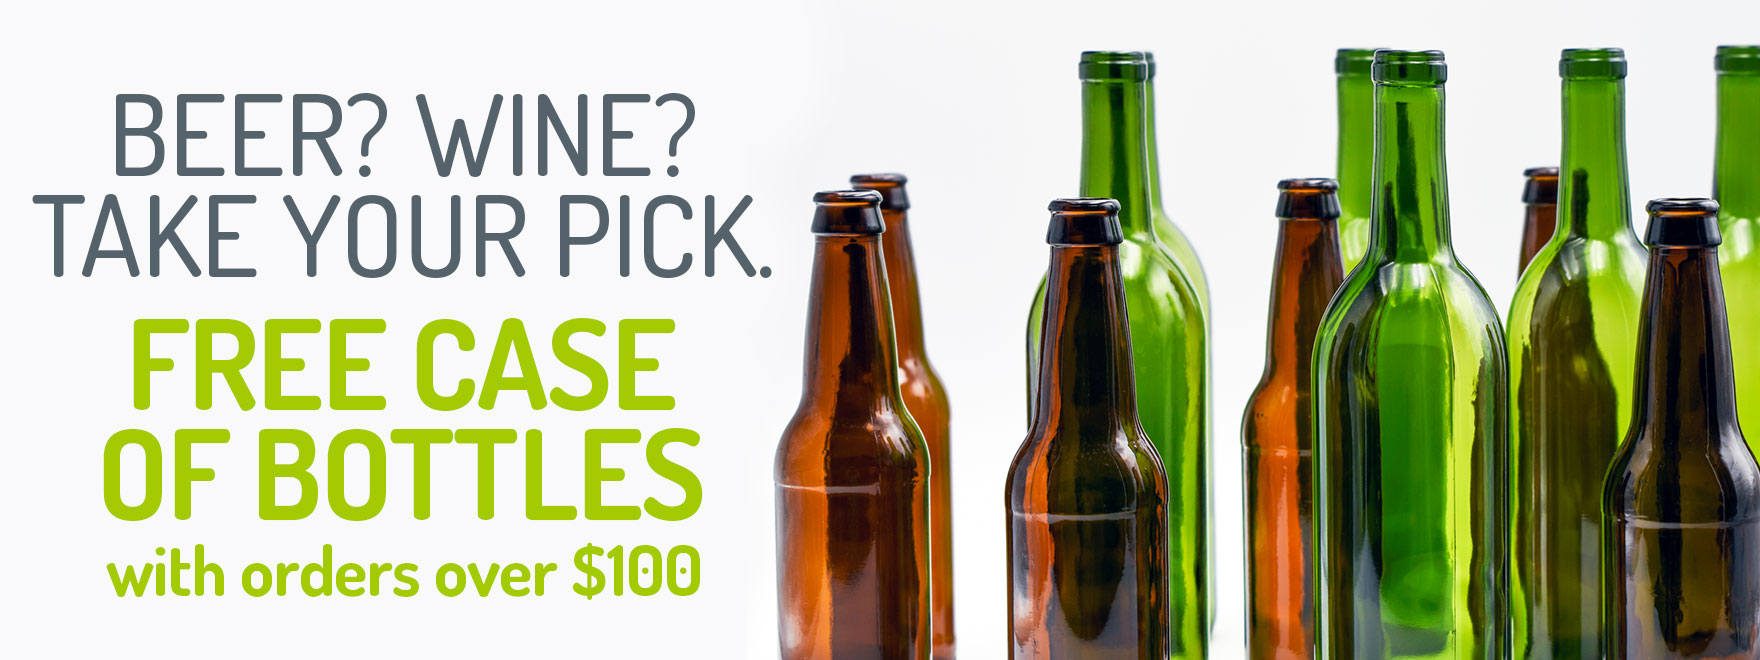 Free Case of Bottles With Orders Over $100